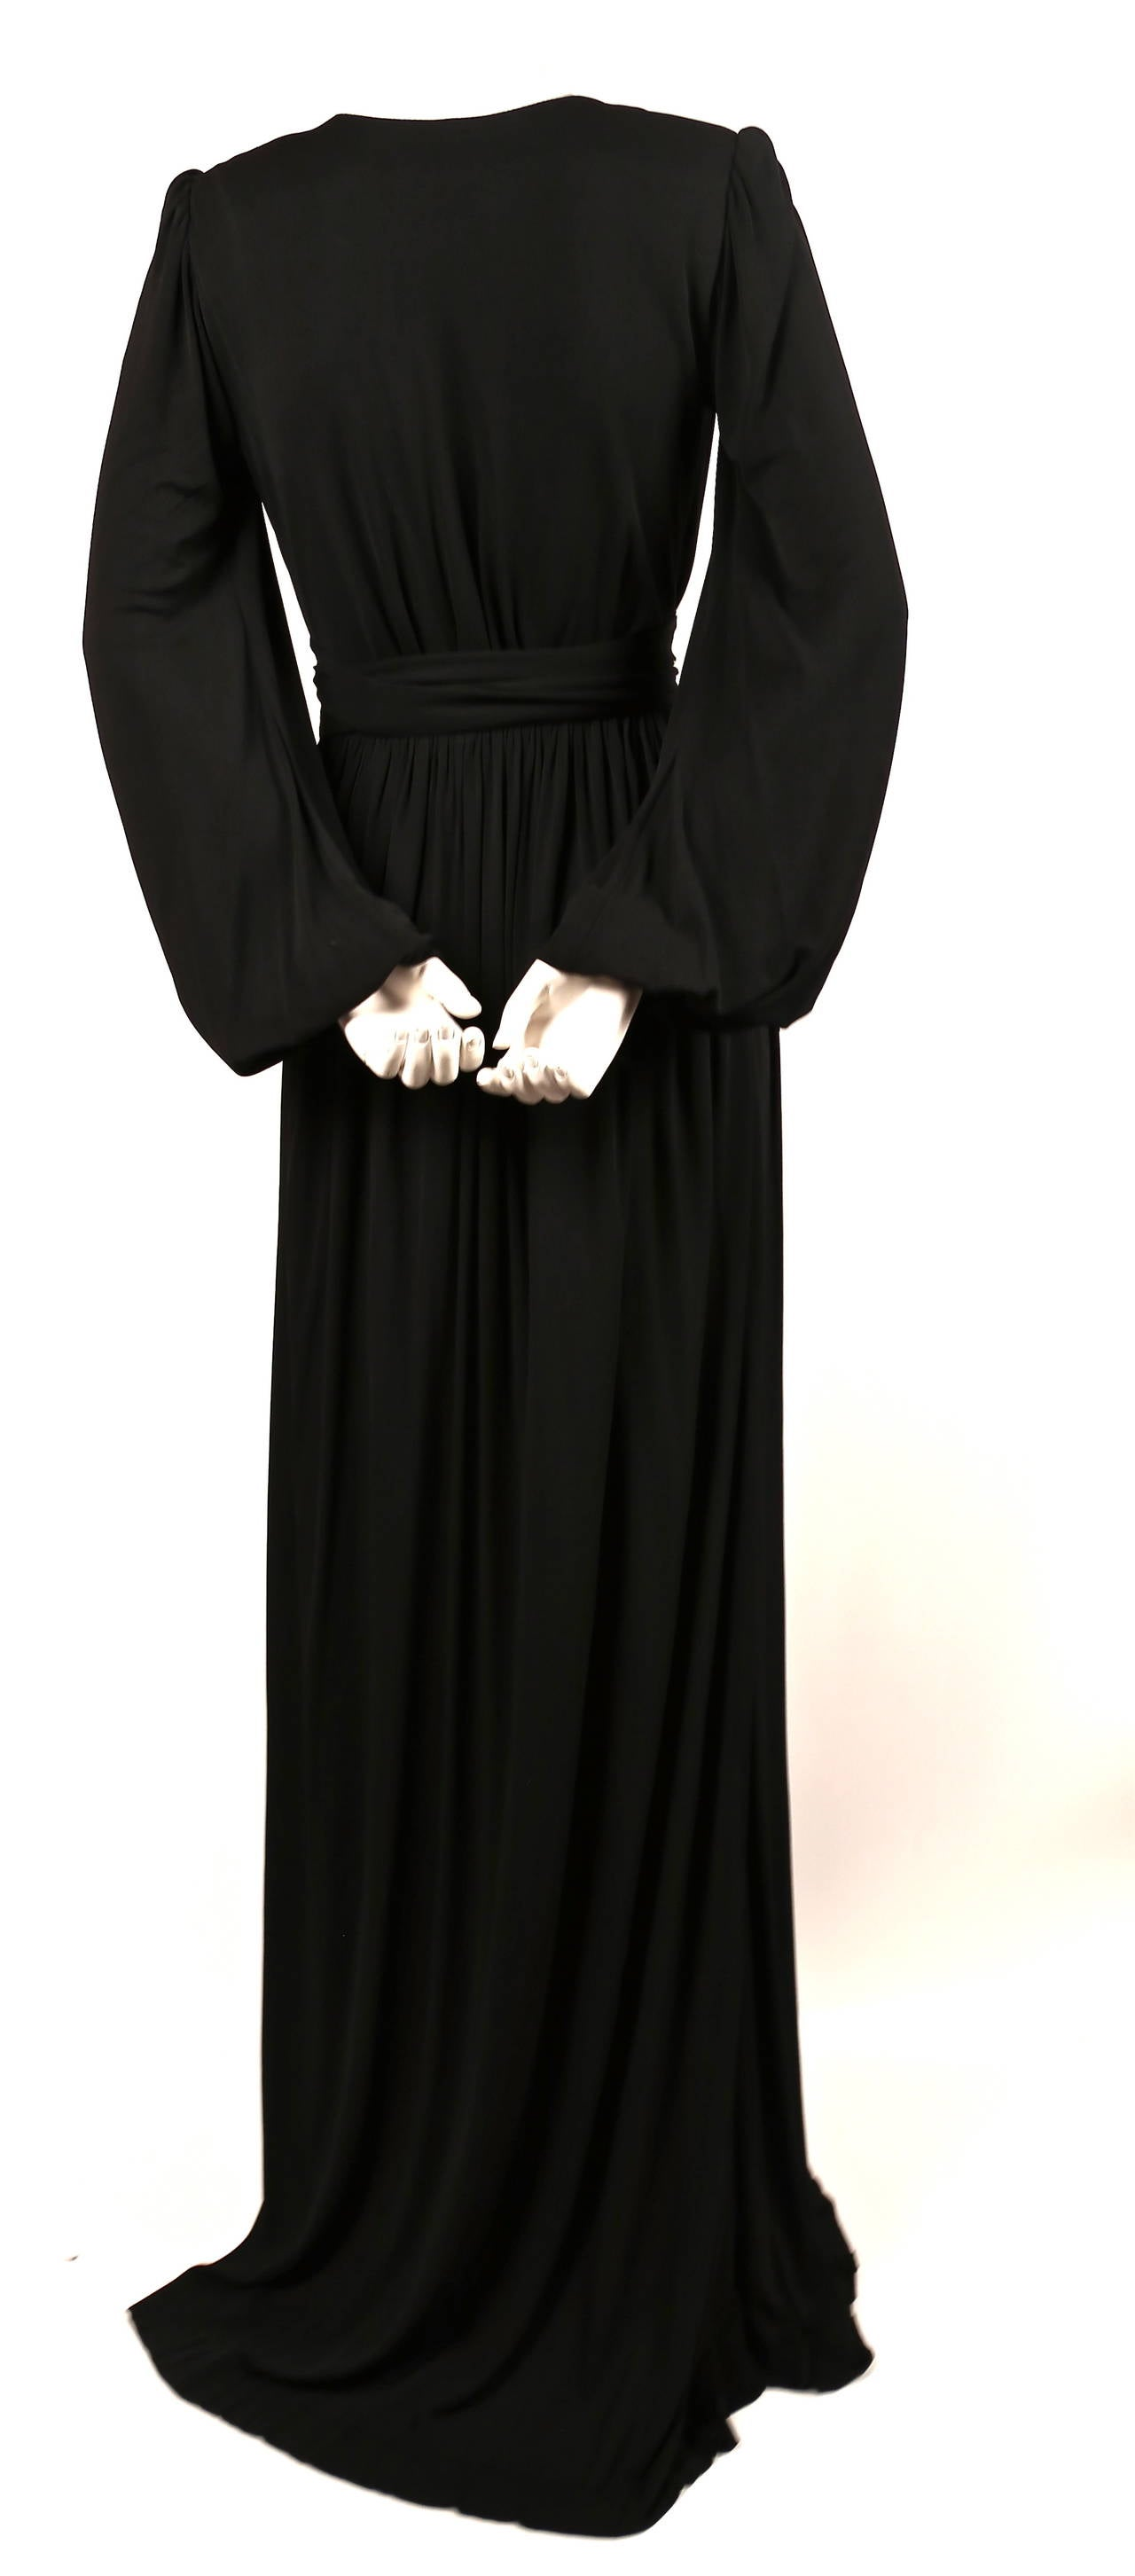 1970's YVES SAINT LAURENT long black jersey gown with matching sash In Excellent Condition For Sale In San Fransisco, CA